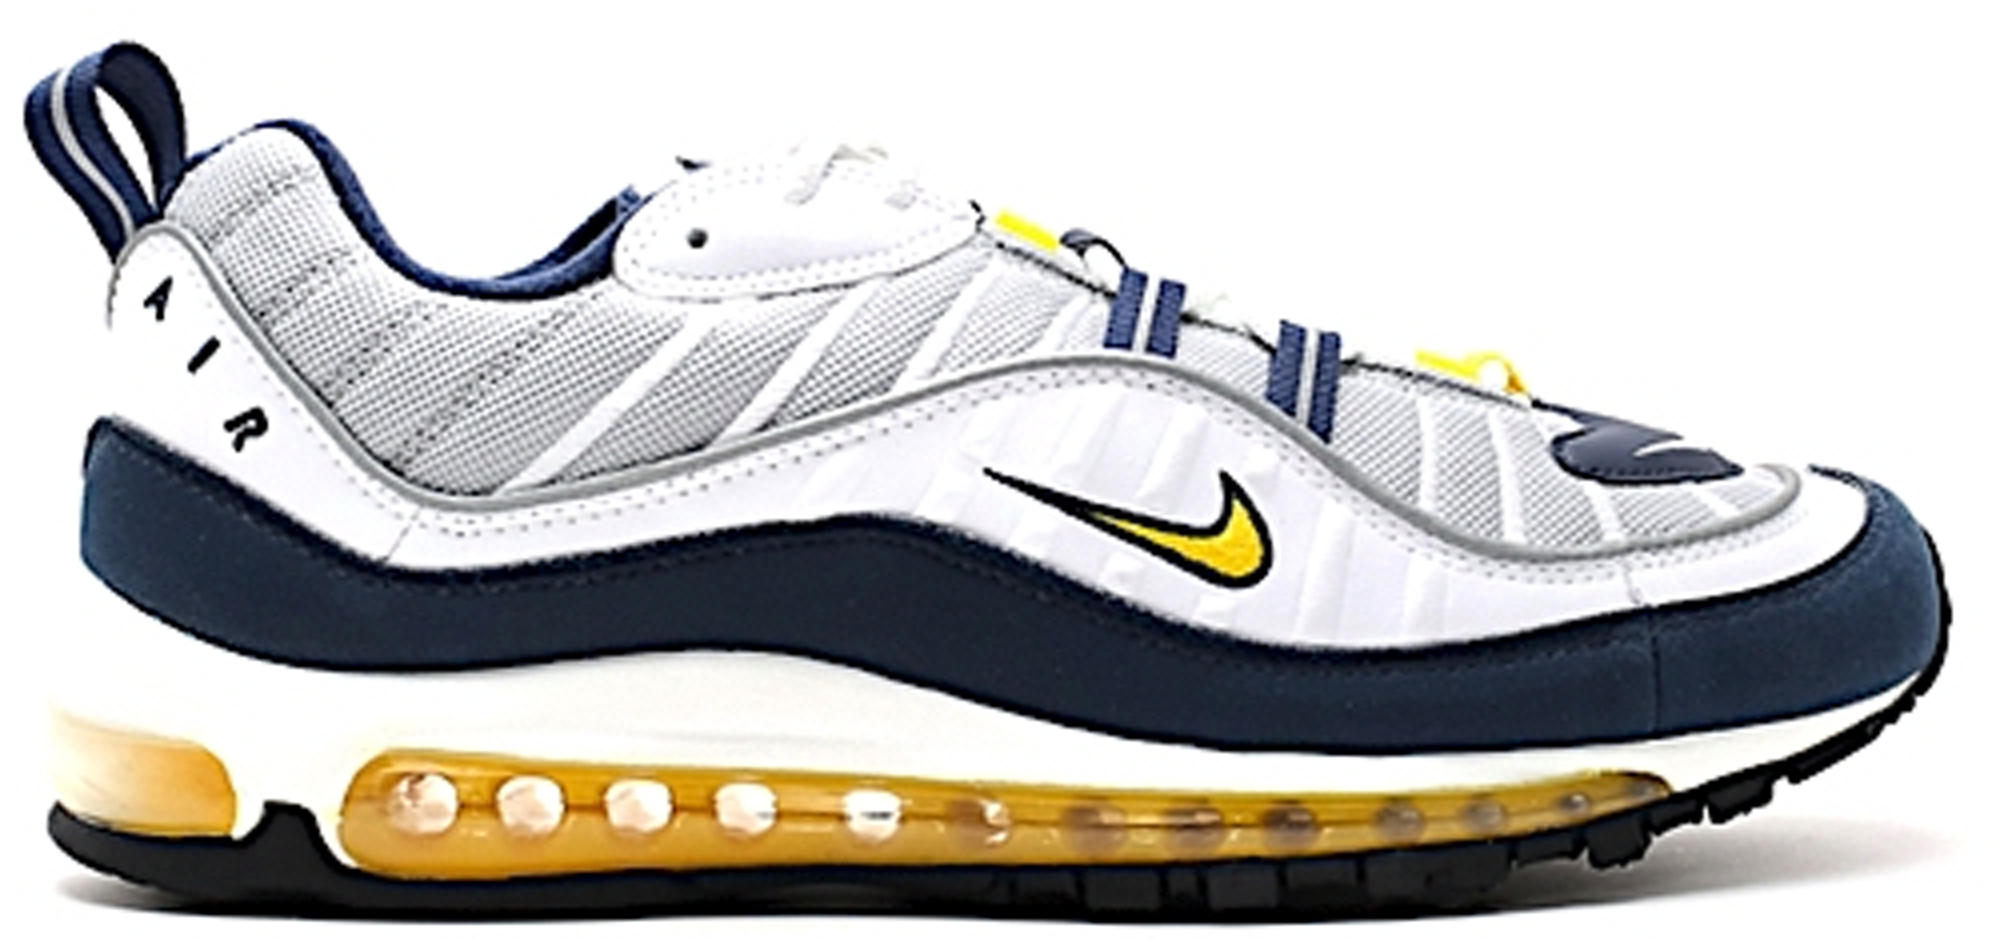 Air Max 98 Tour Yellow